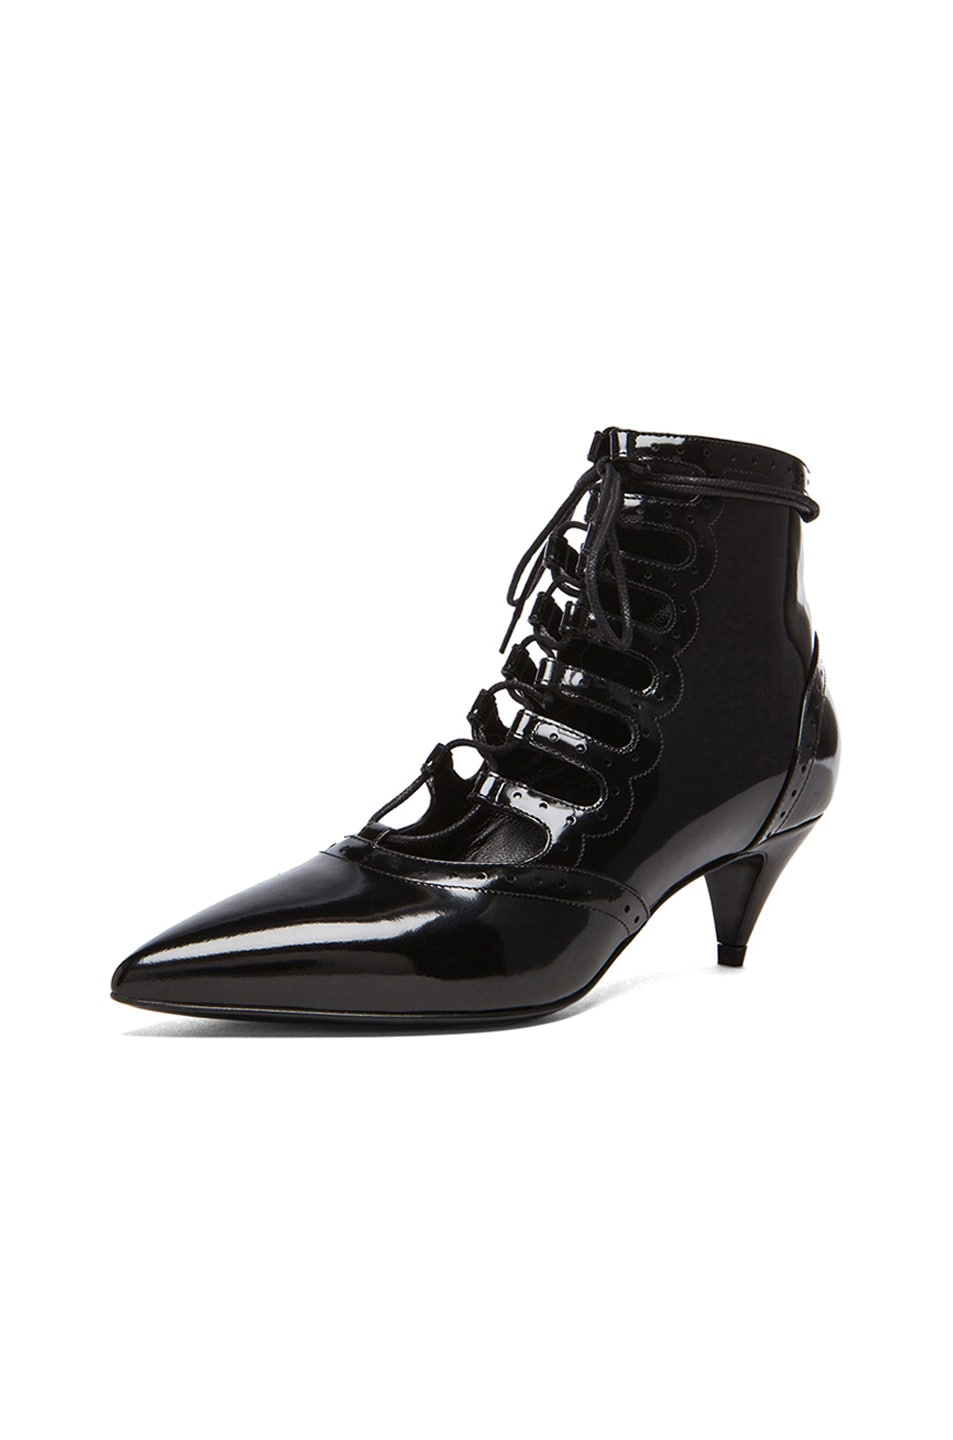 Image 2 of Saint Laurent Lace Up Cat Patent Leather Boots in Black